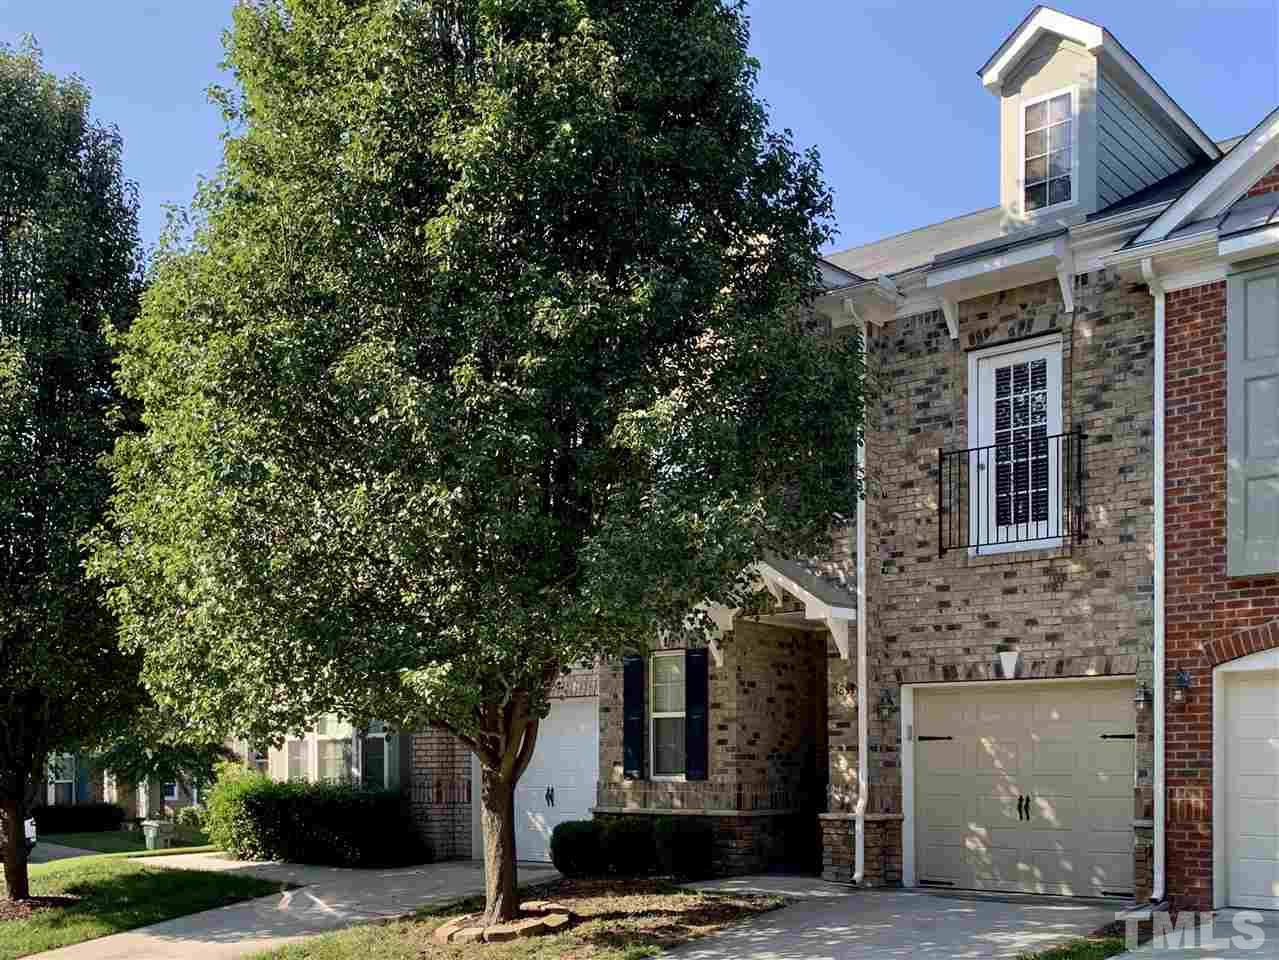 Stunning all brick townhome in the desirable Amberly subdivision in Cary with oversized covered porch overlooking plush common space.